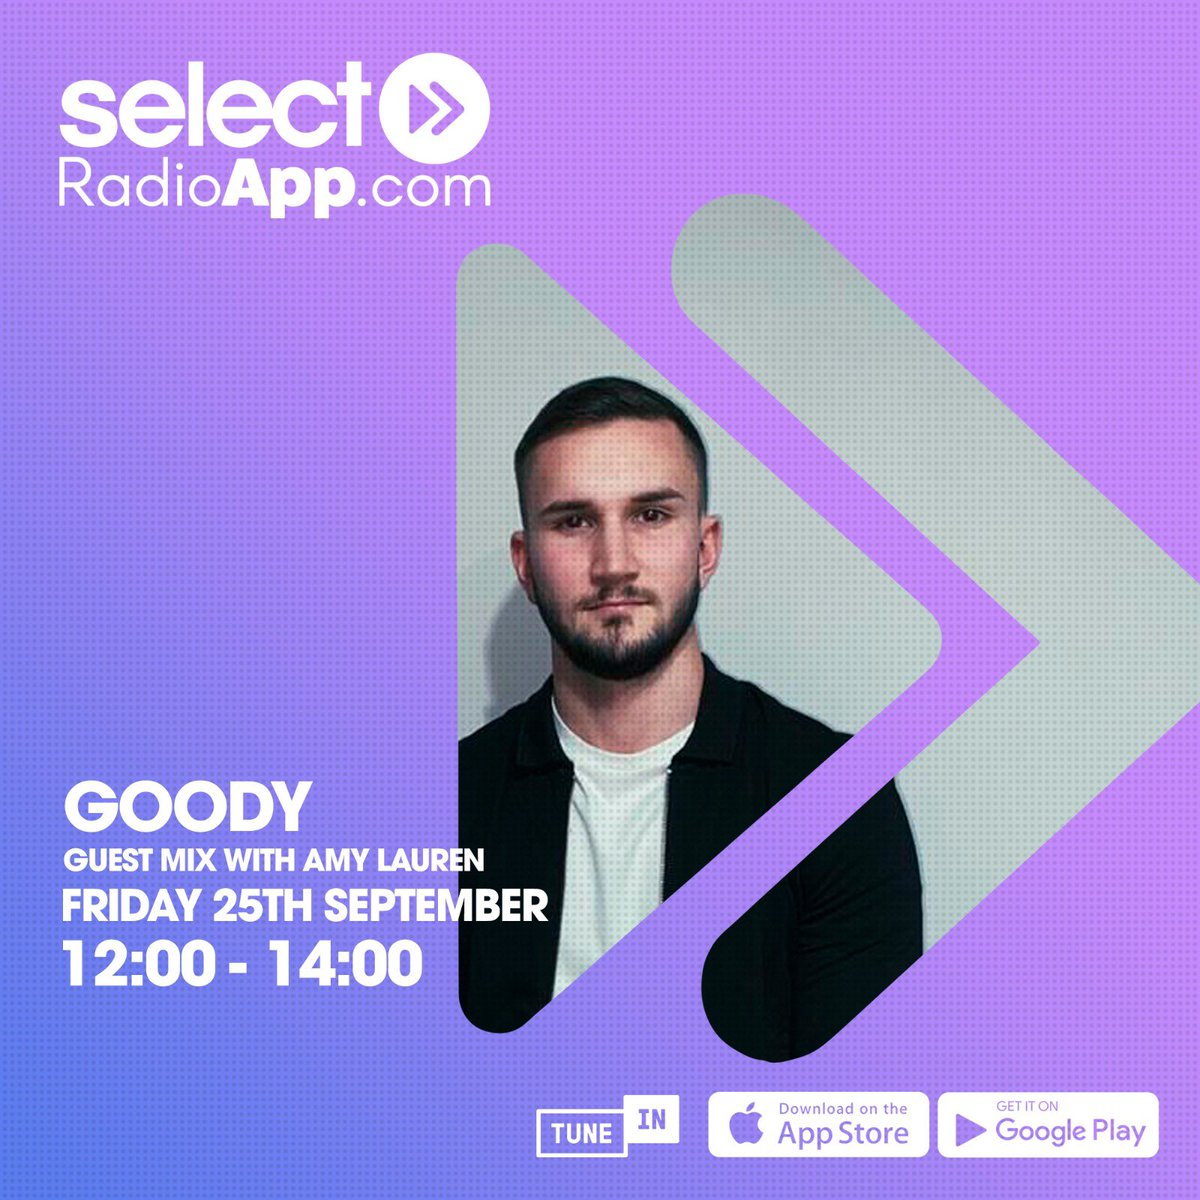 #np @eastenddubs - Bossy in @OfficialGoody #GuestMix on #TheDanceShow on @SelectRadioApp https://t.co/UY7MHzTEpc